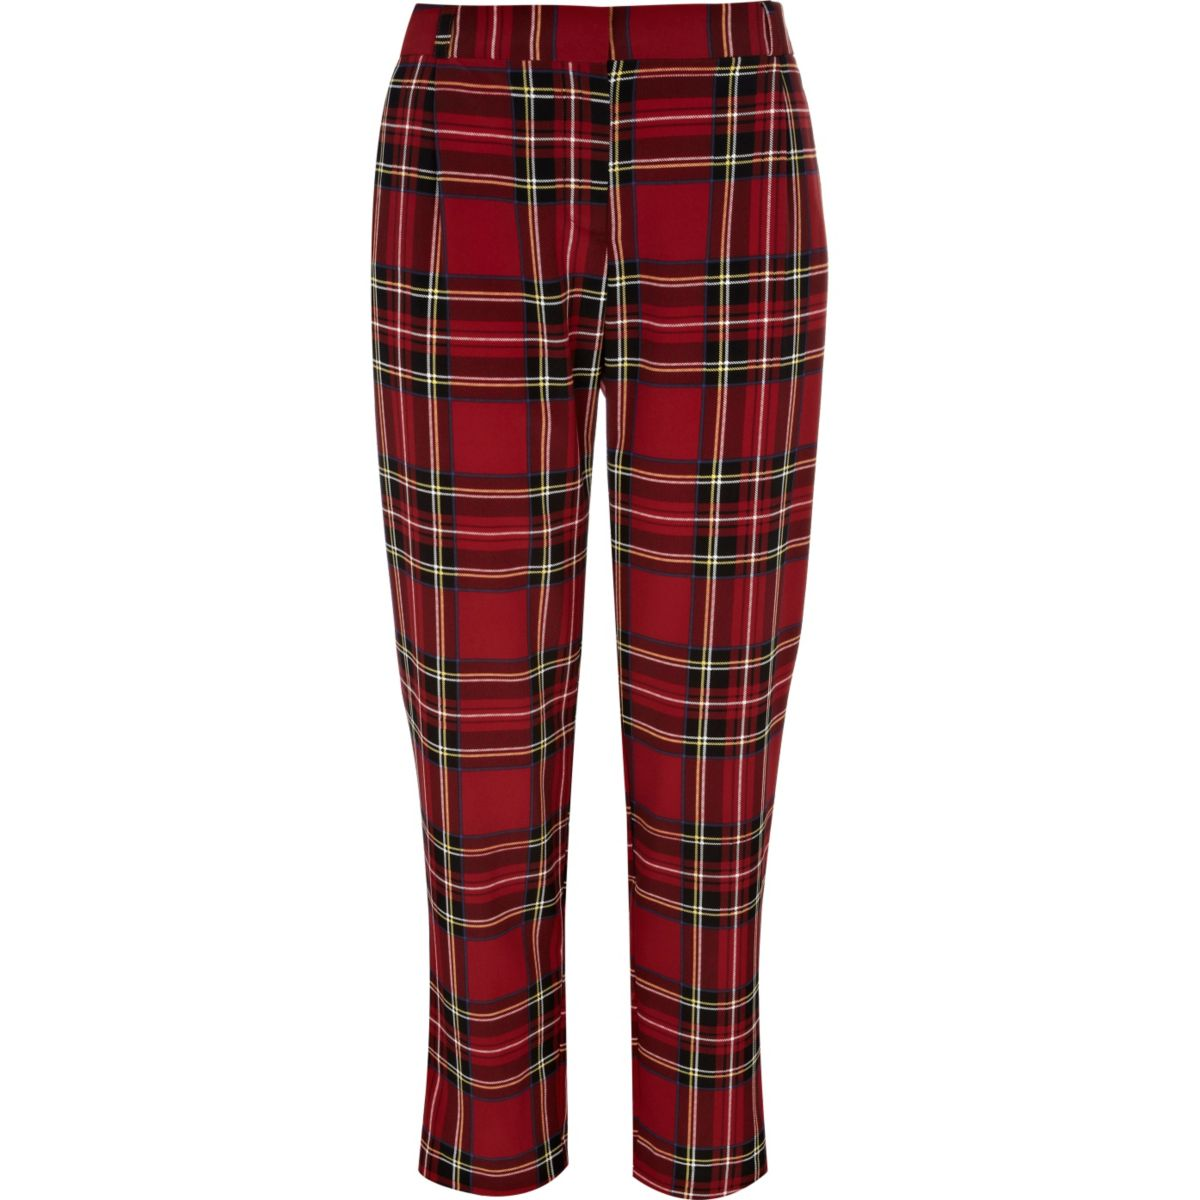 Women's High Waist Plaid Skinny Pants Slim Fit Pencil Pants Trousers Leggings $ 7 3 out of 5 stars 8. MakeMeChic. Women's Lace up High Waist Pocket Trousers Casual Pants $ 18 99 Prime. out of 5 stars SheIn. Women's Ruffle Tie Waist Pants with Pockets. from $ 9 .